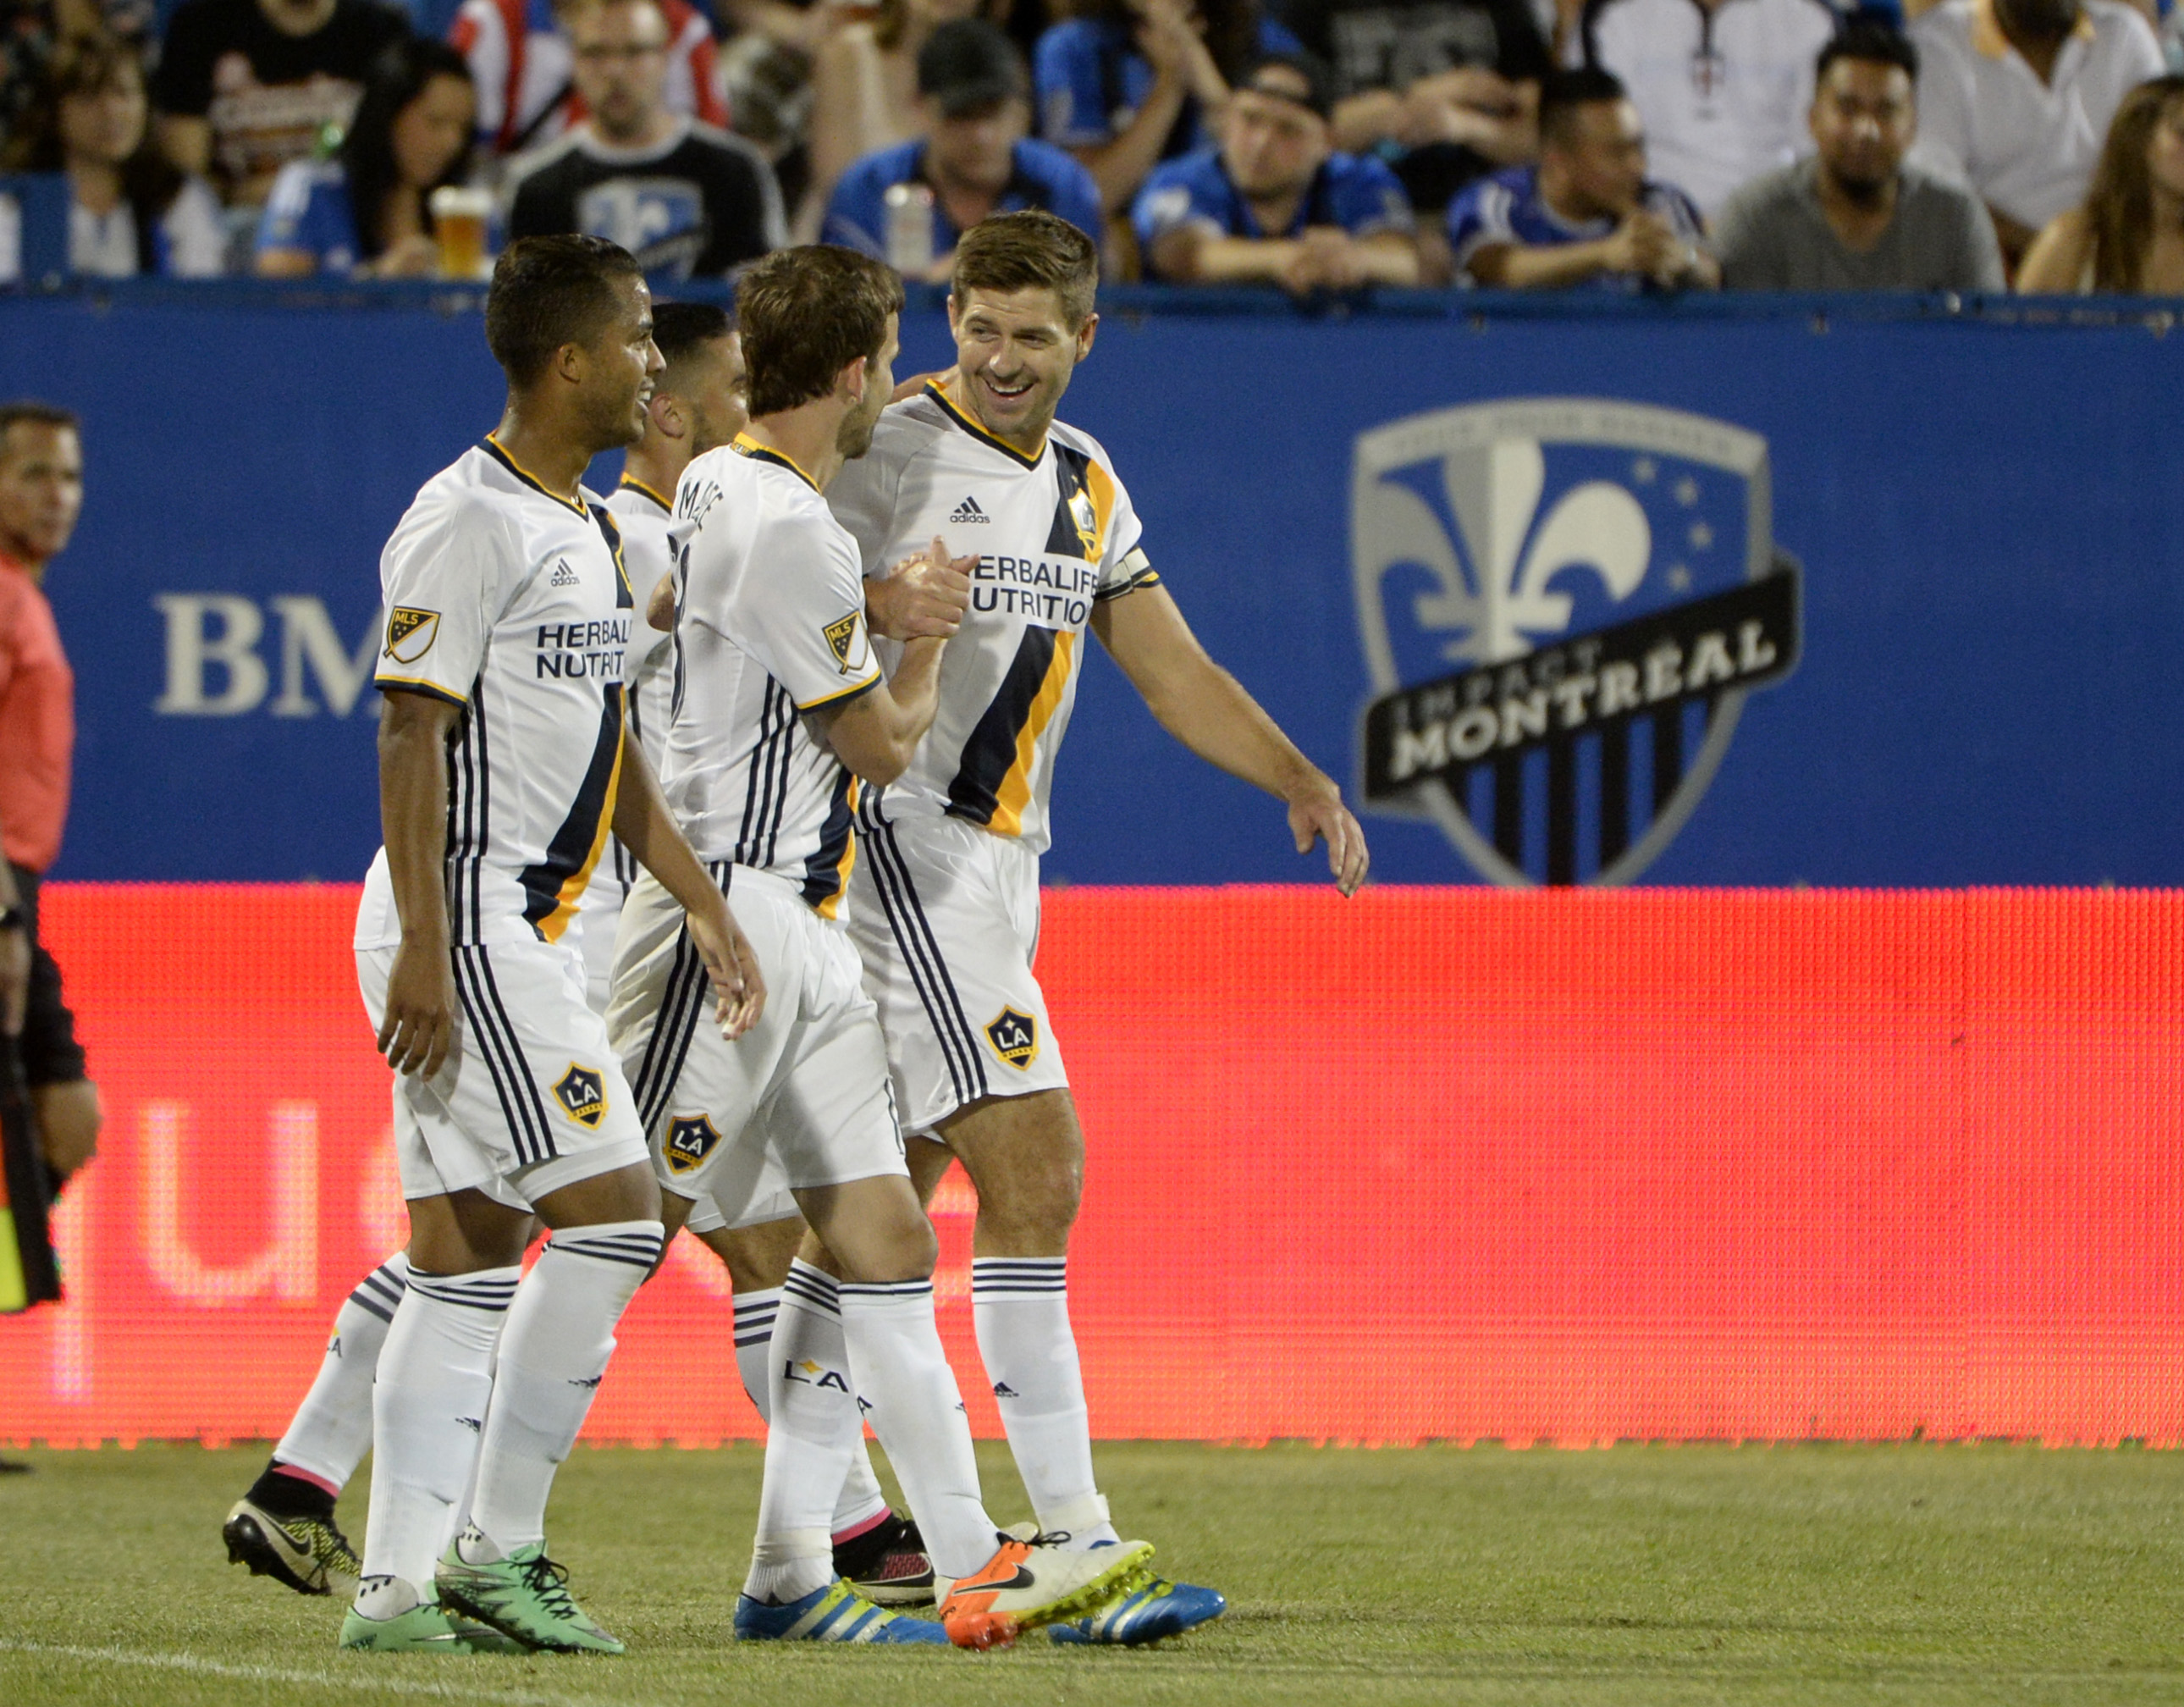 The Galaxy are in good form and have a great upcoming schedule. Are you buying in?